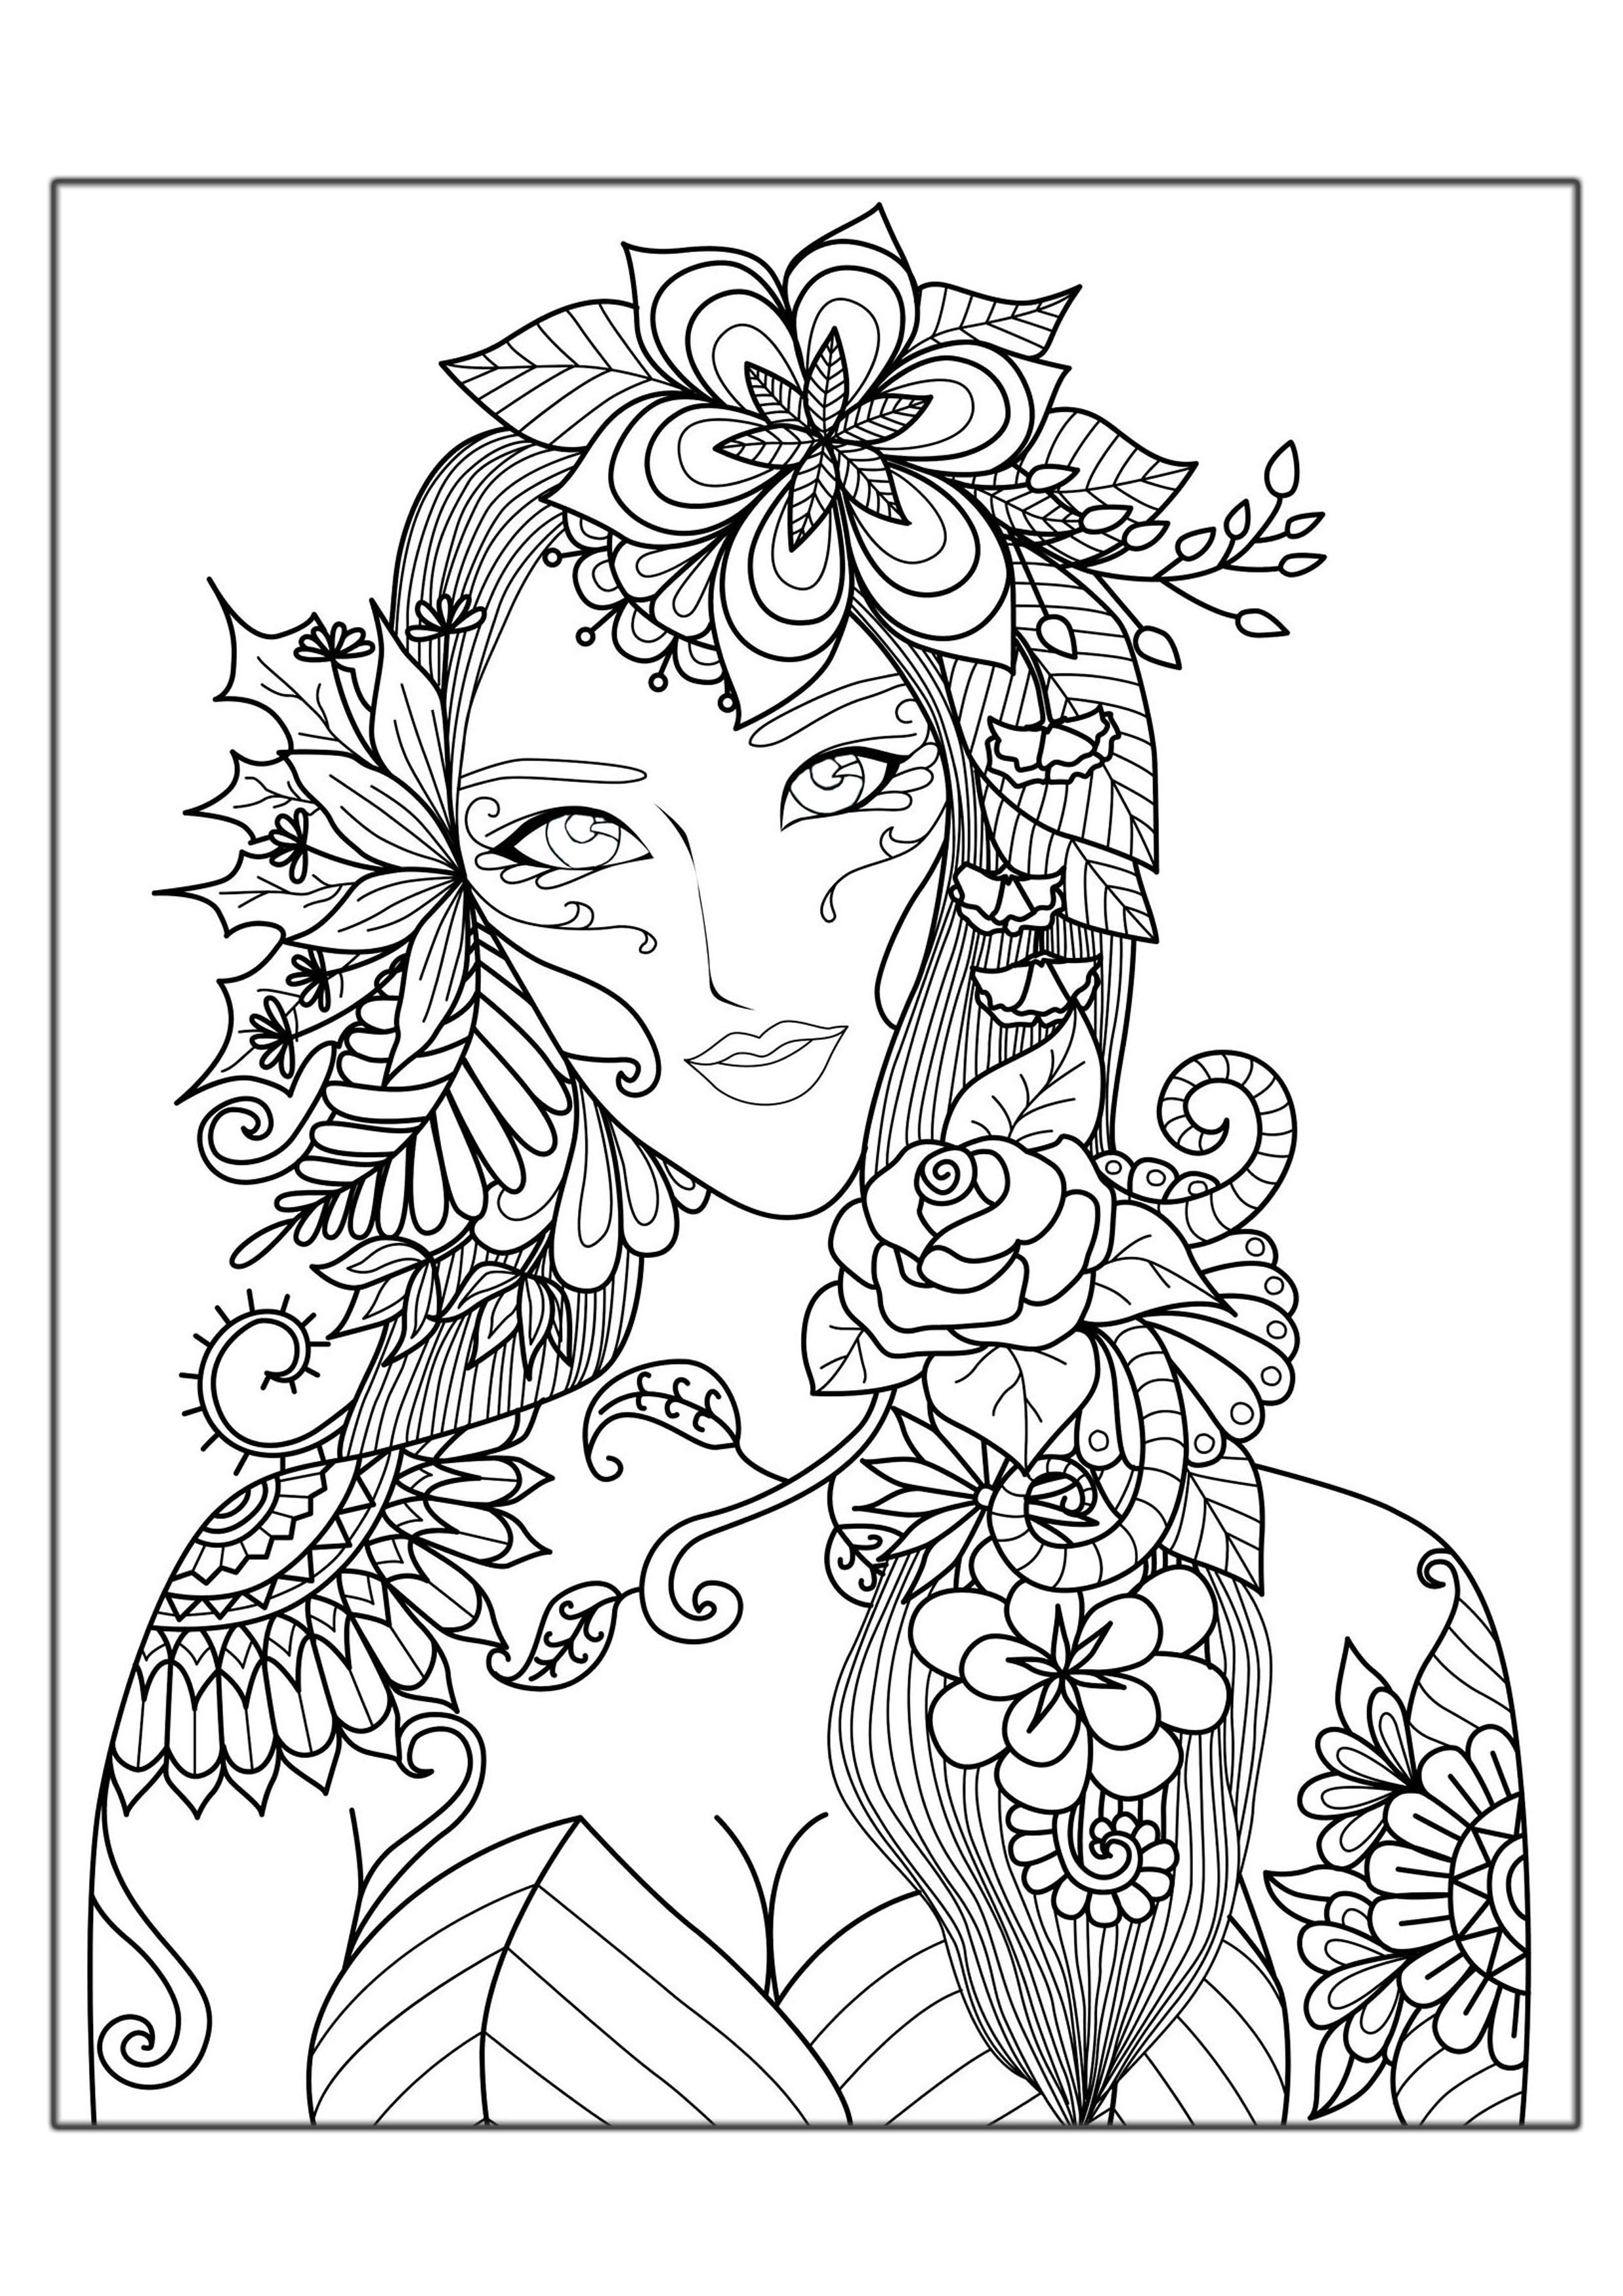 coloring pics hard coloring pages for adults best coloring pages for kids coloring pics